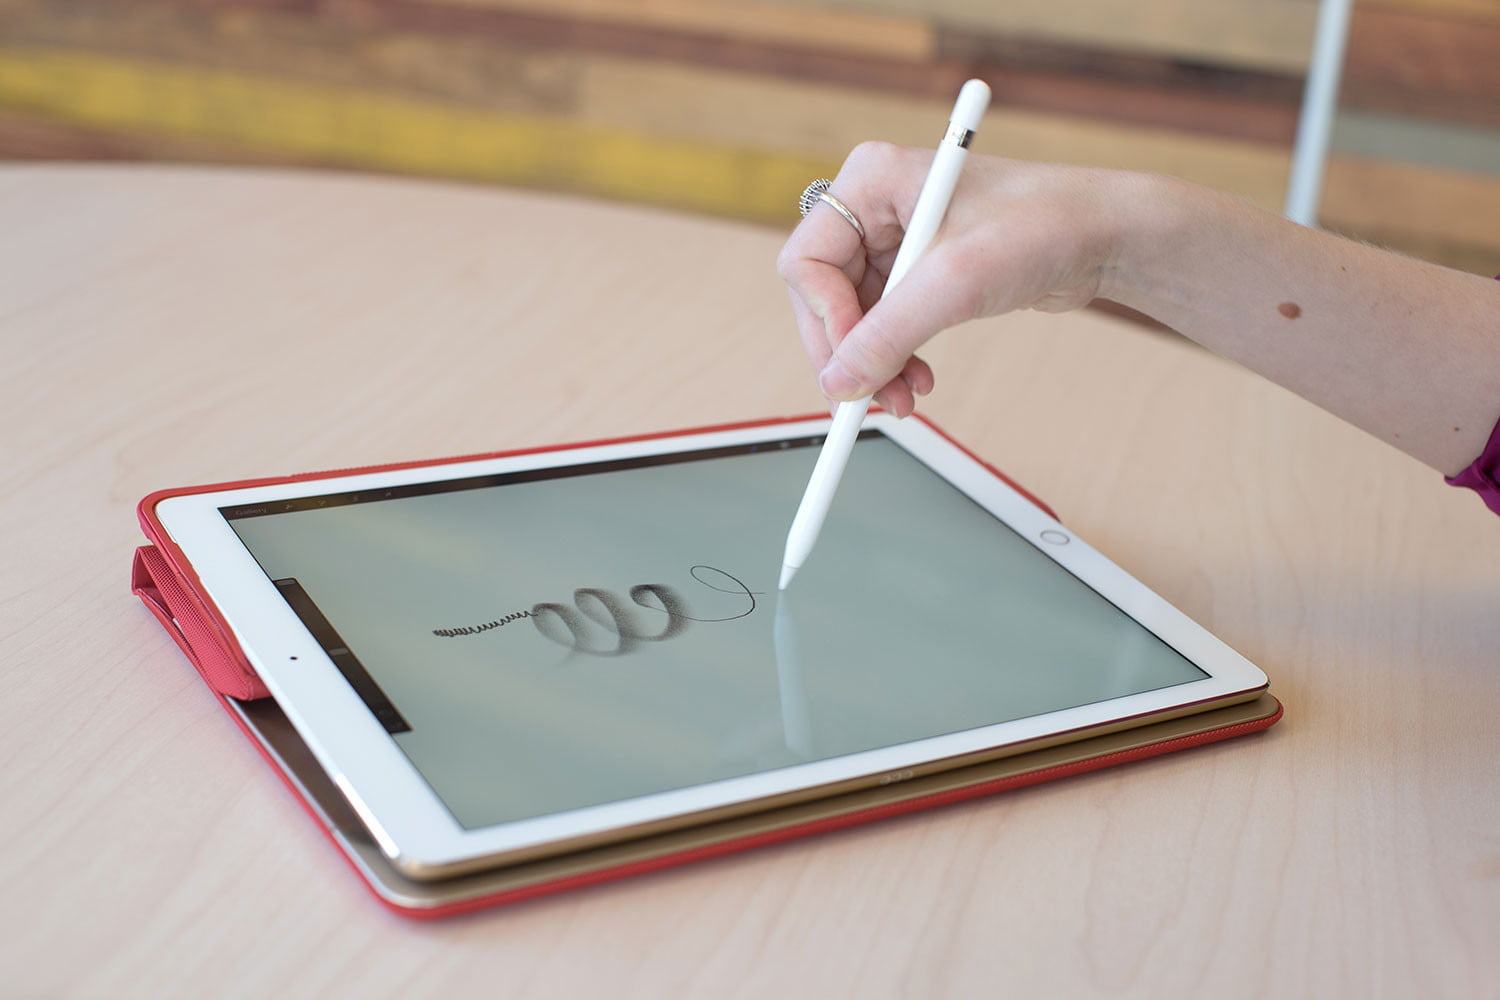 how to delete games on ipad pro